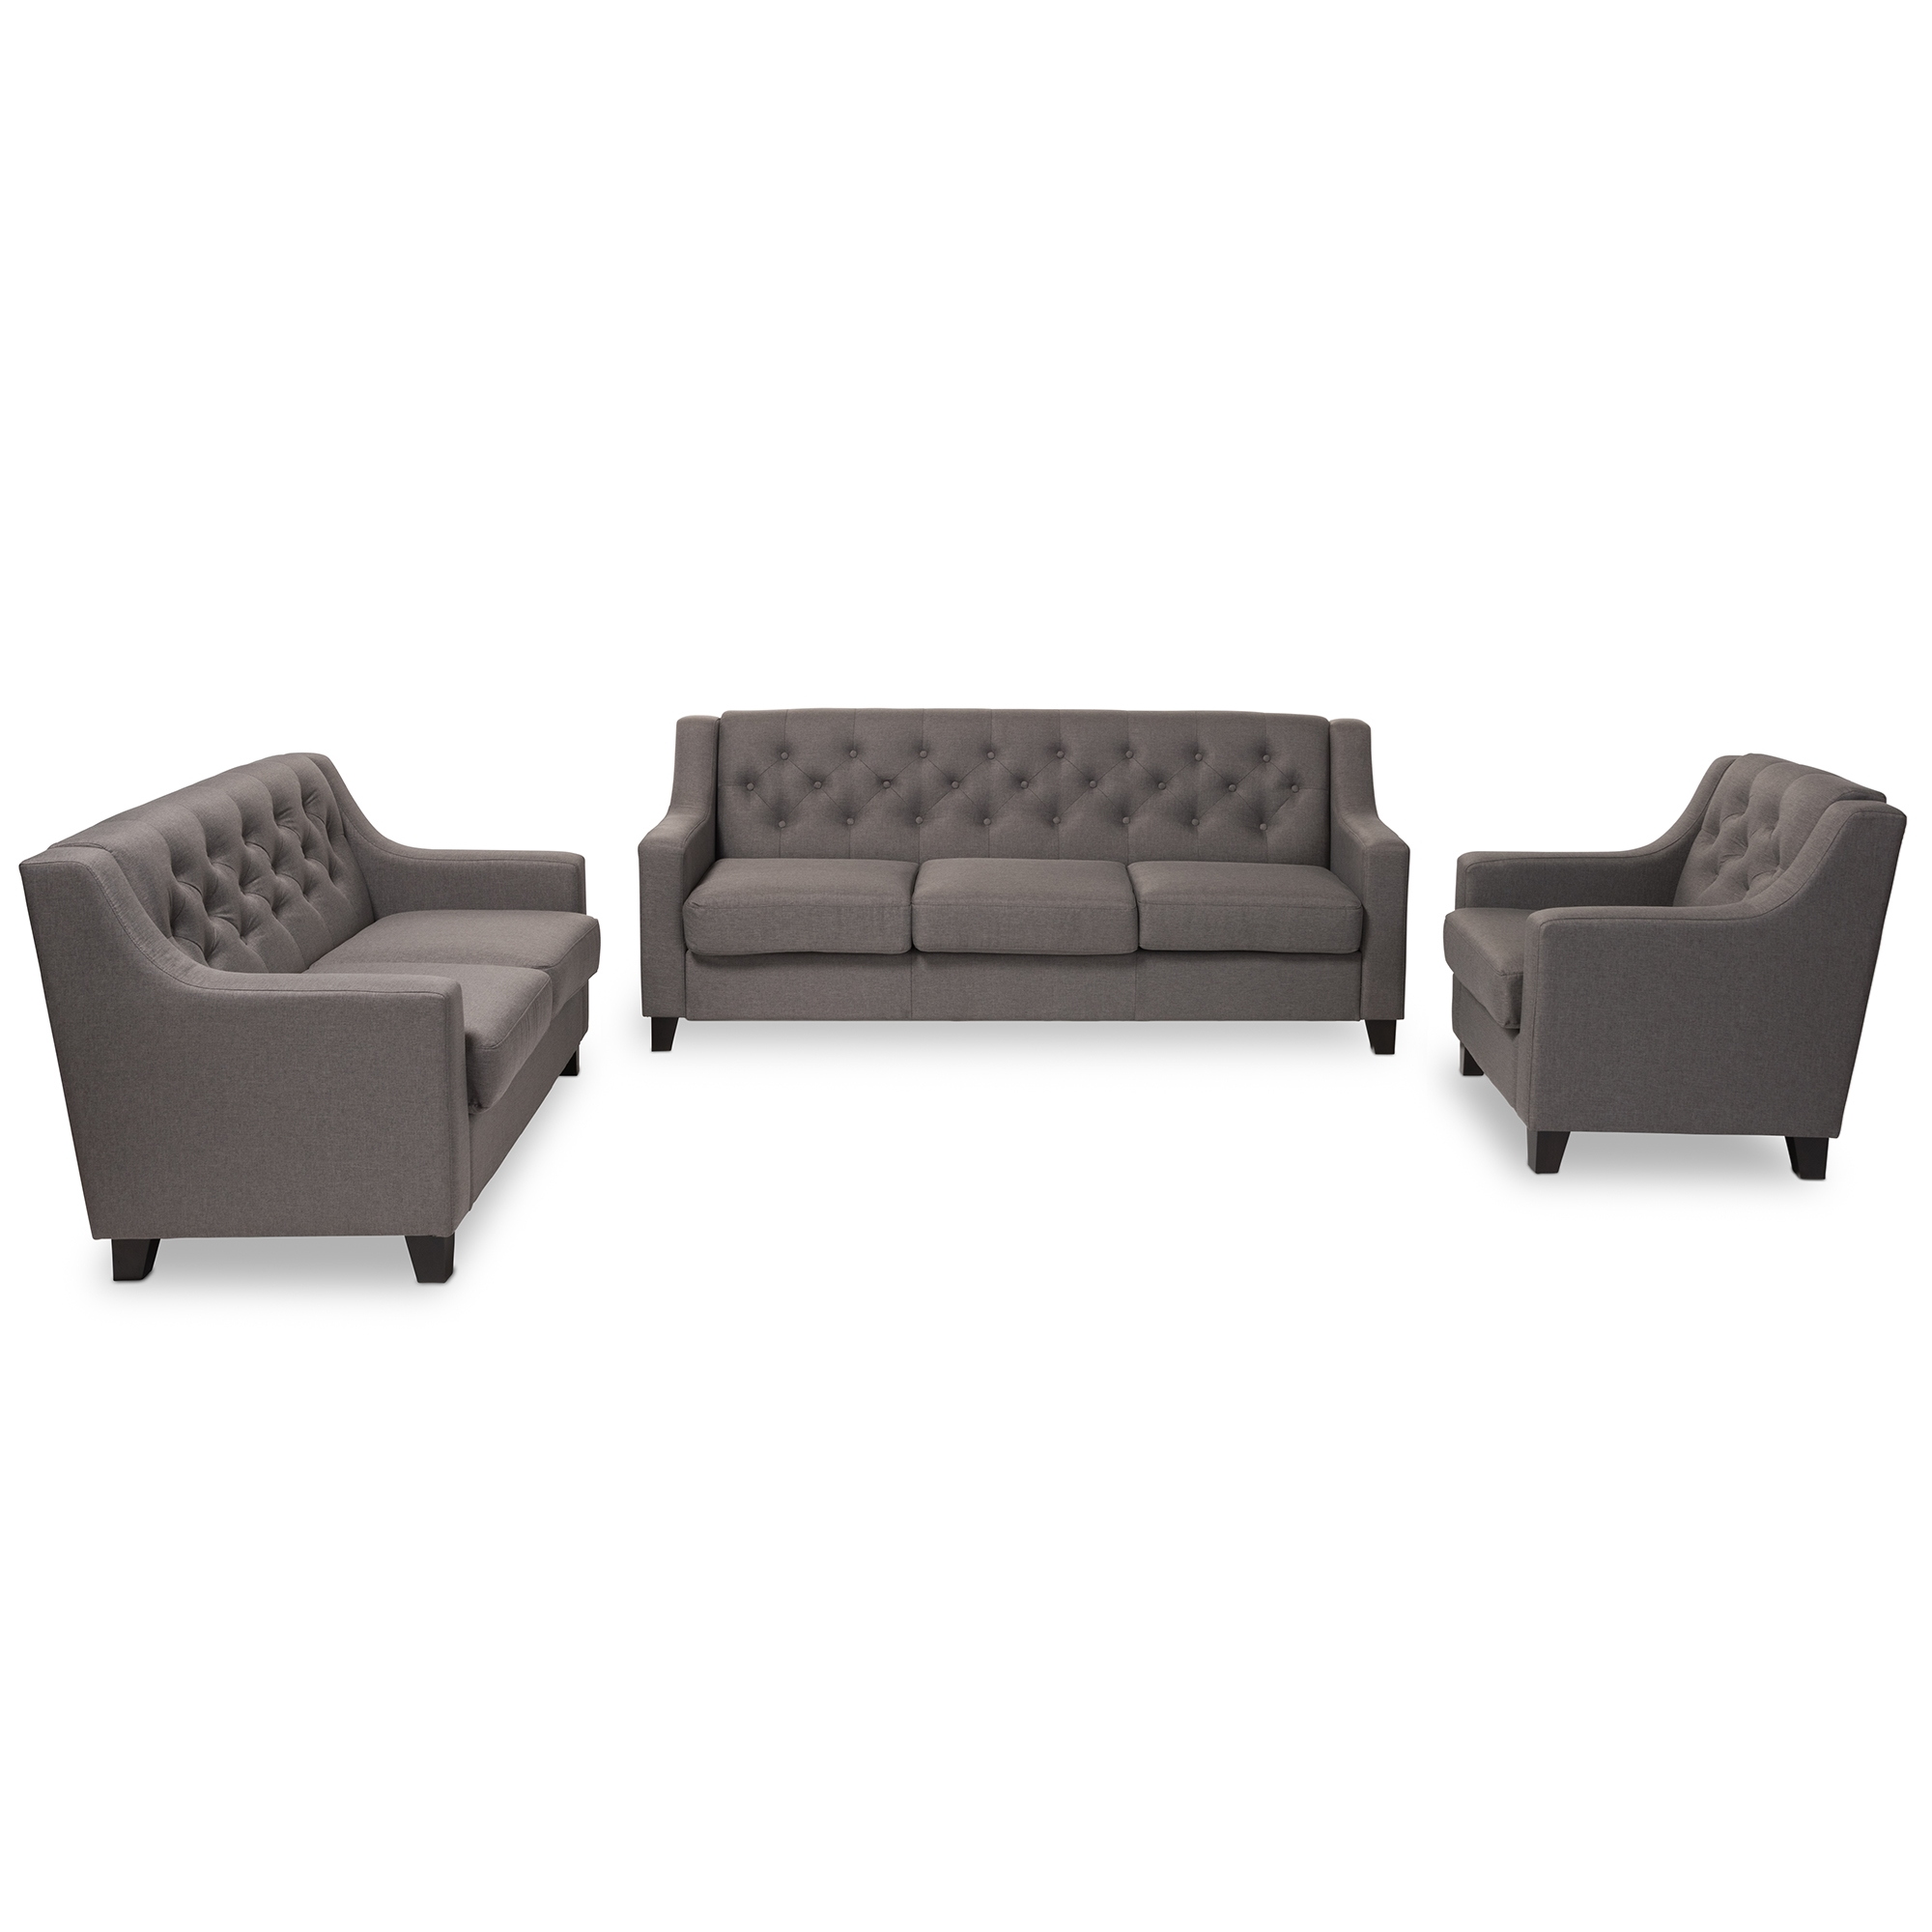 Wholesale Sofa Set | Wholesale Living Room Furniture | Wholesale Furniture